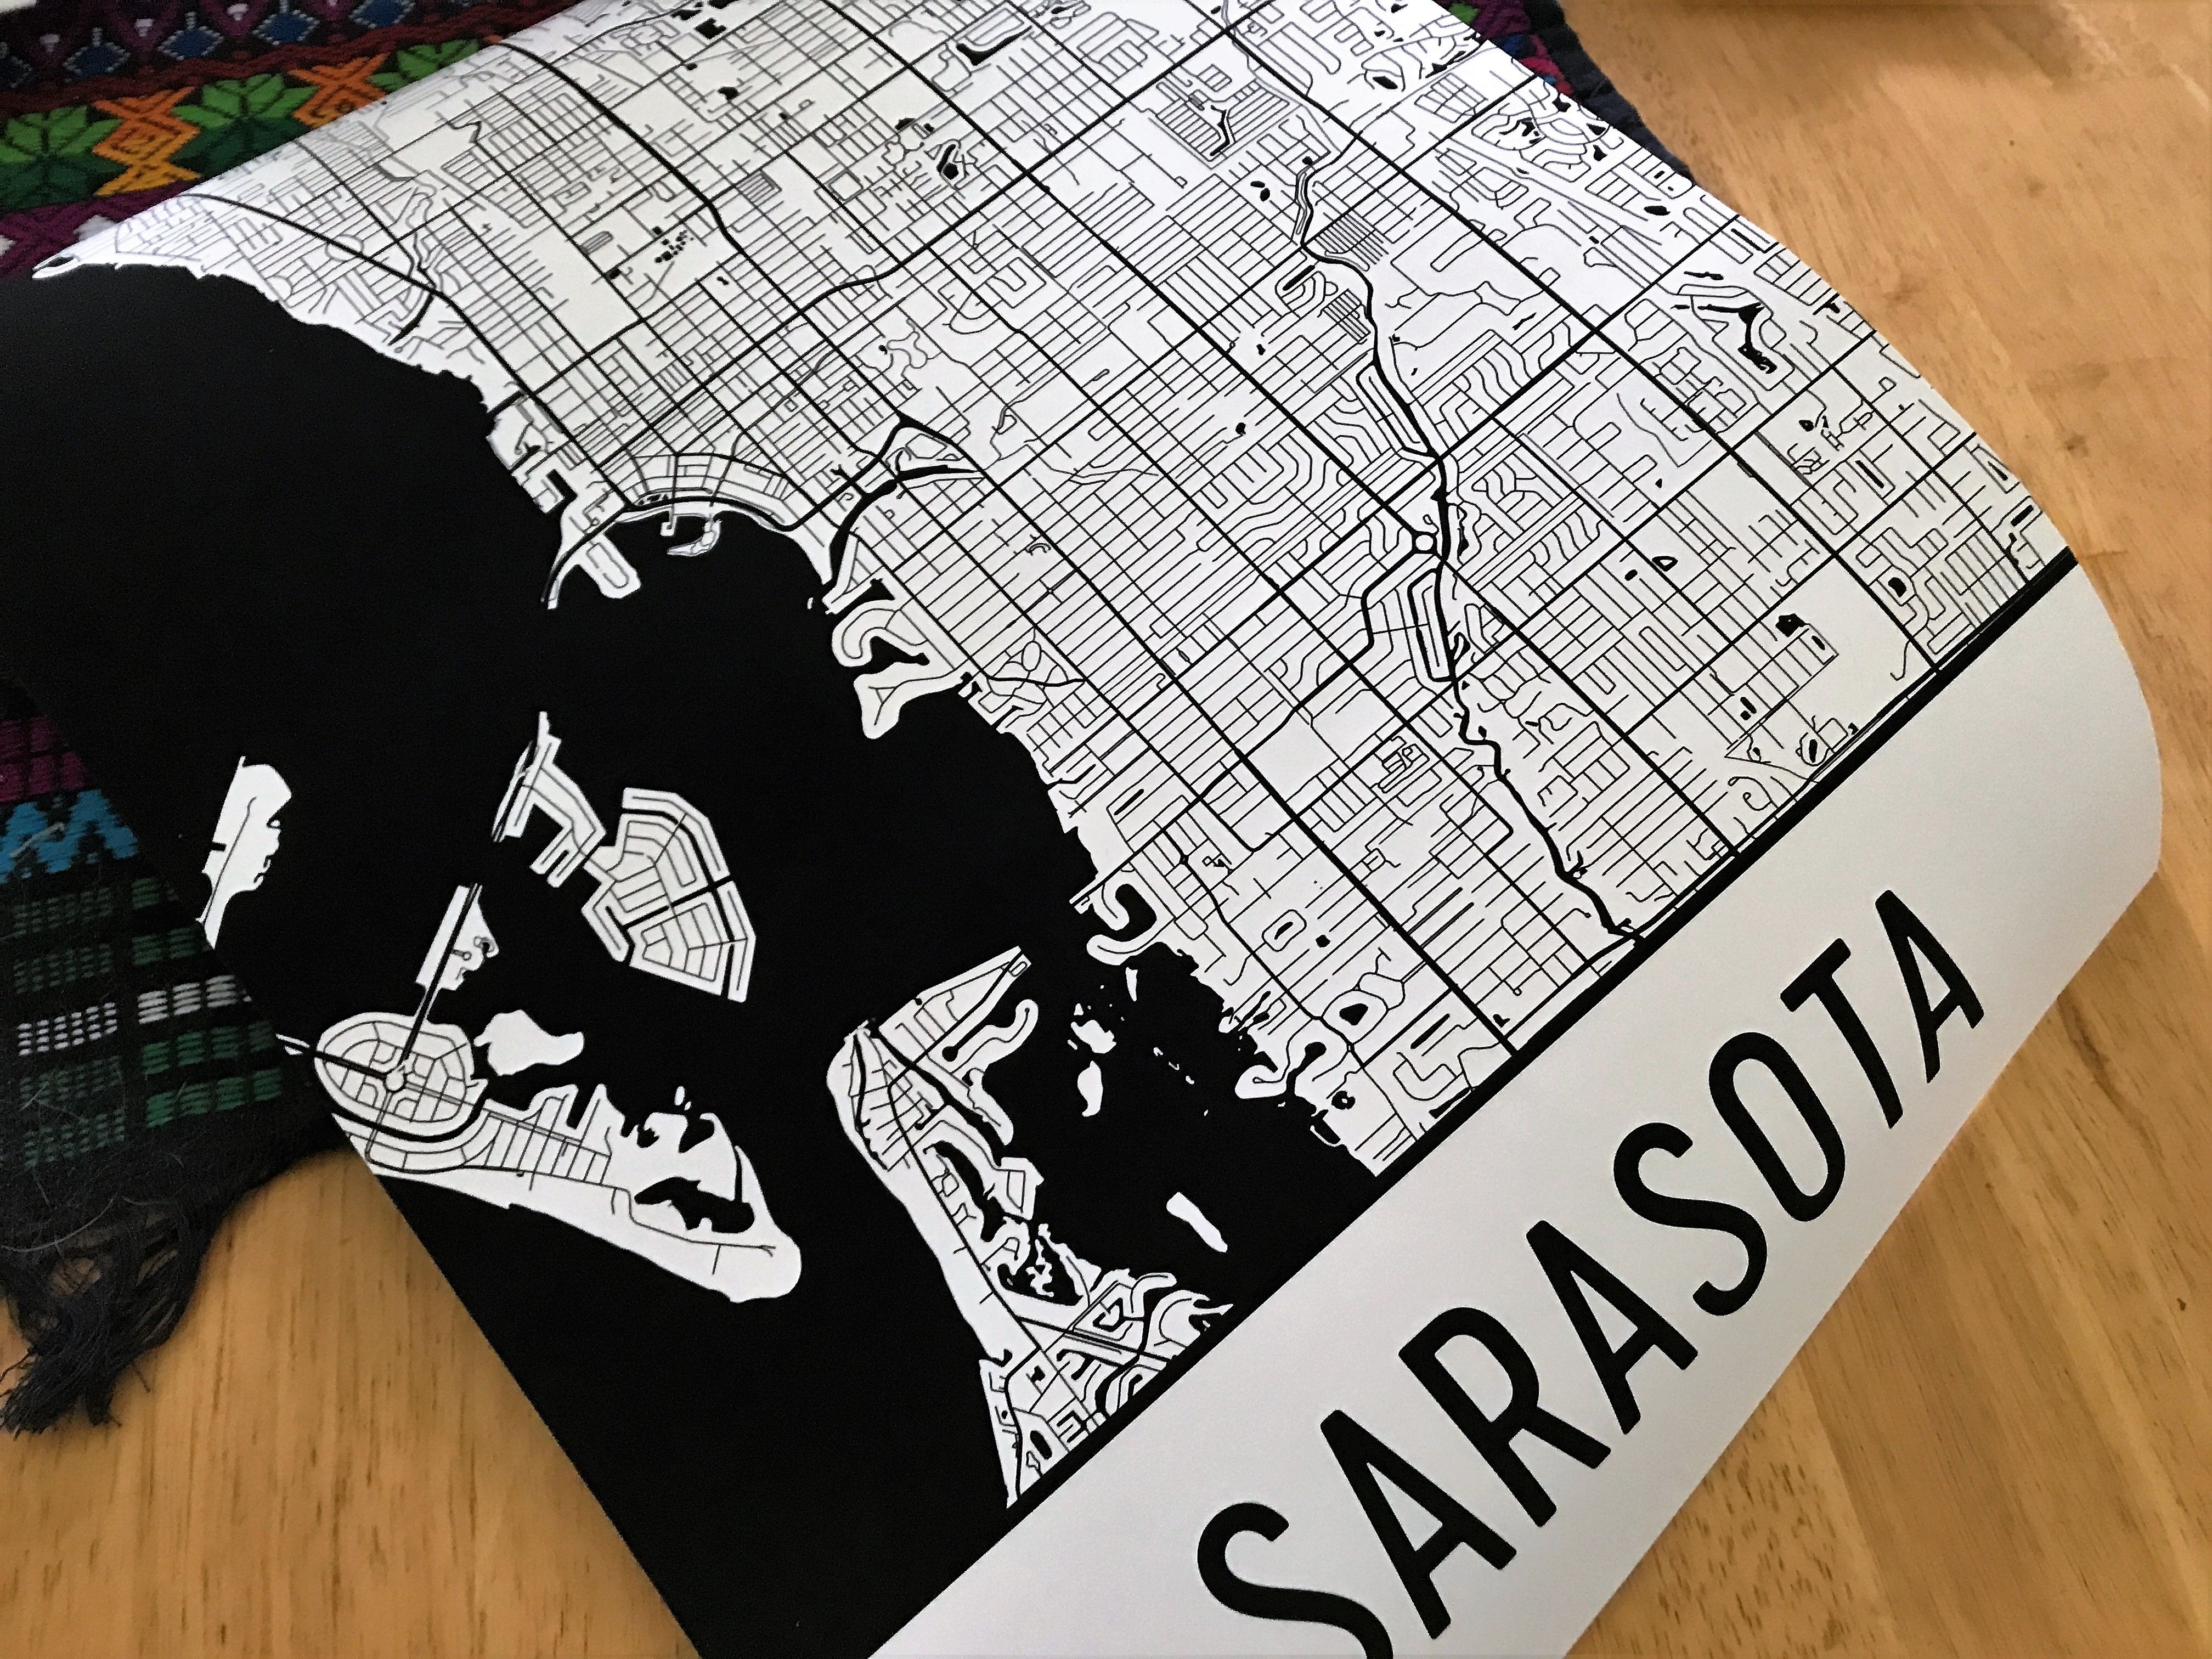 Sarasota Street Map Poster by Modern Map Art is Fun and Perfect Decor for the Traveler.